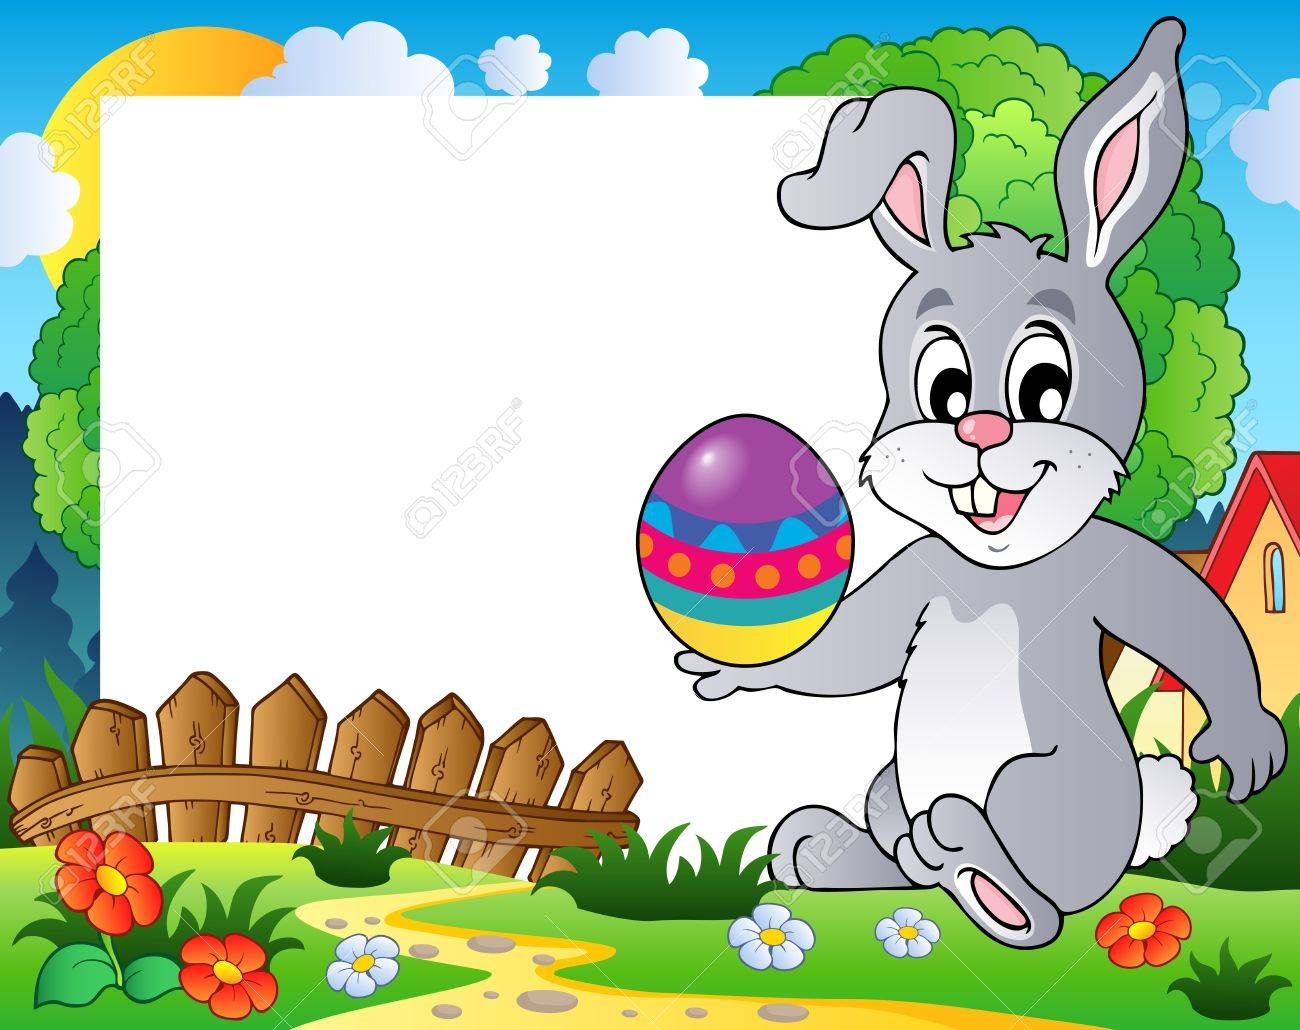 Frame with Easter bunny theme 3 - vector illustration Stock Vector - 12895902